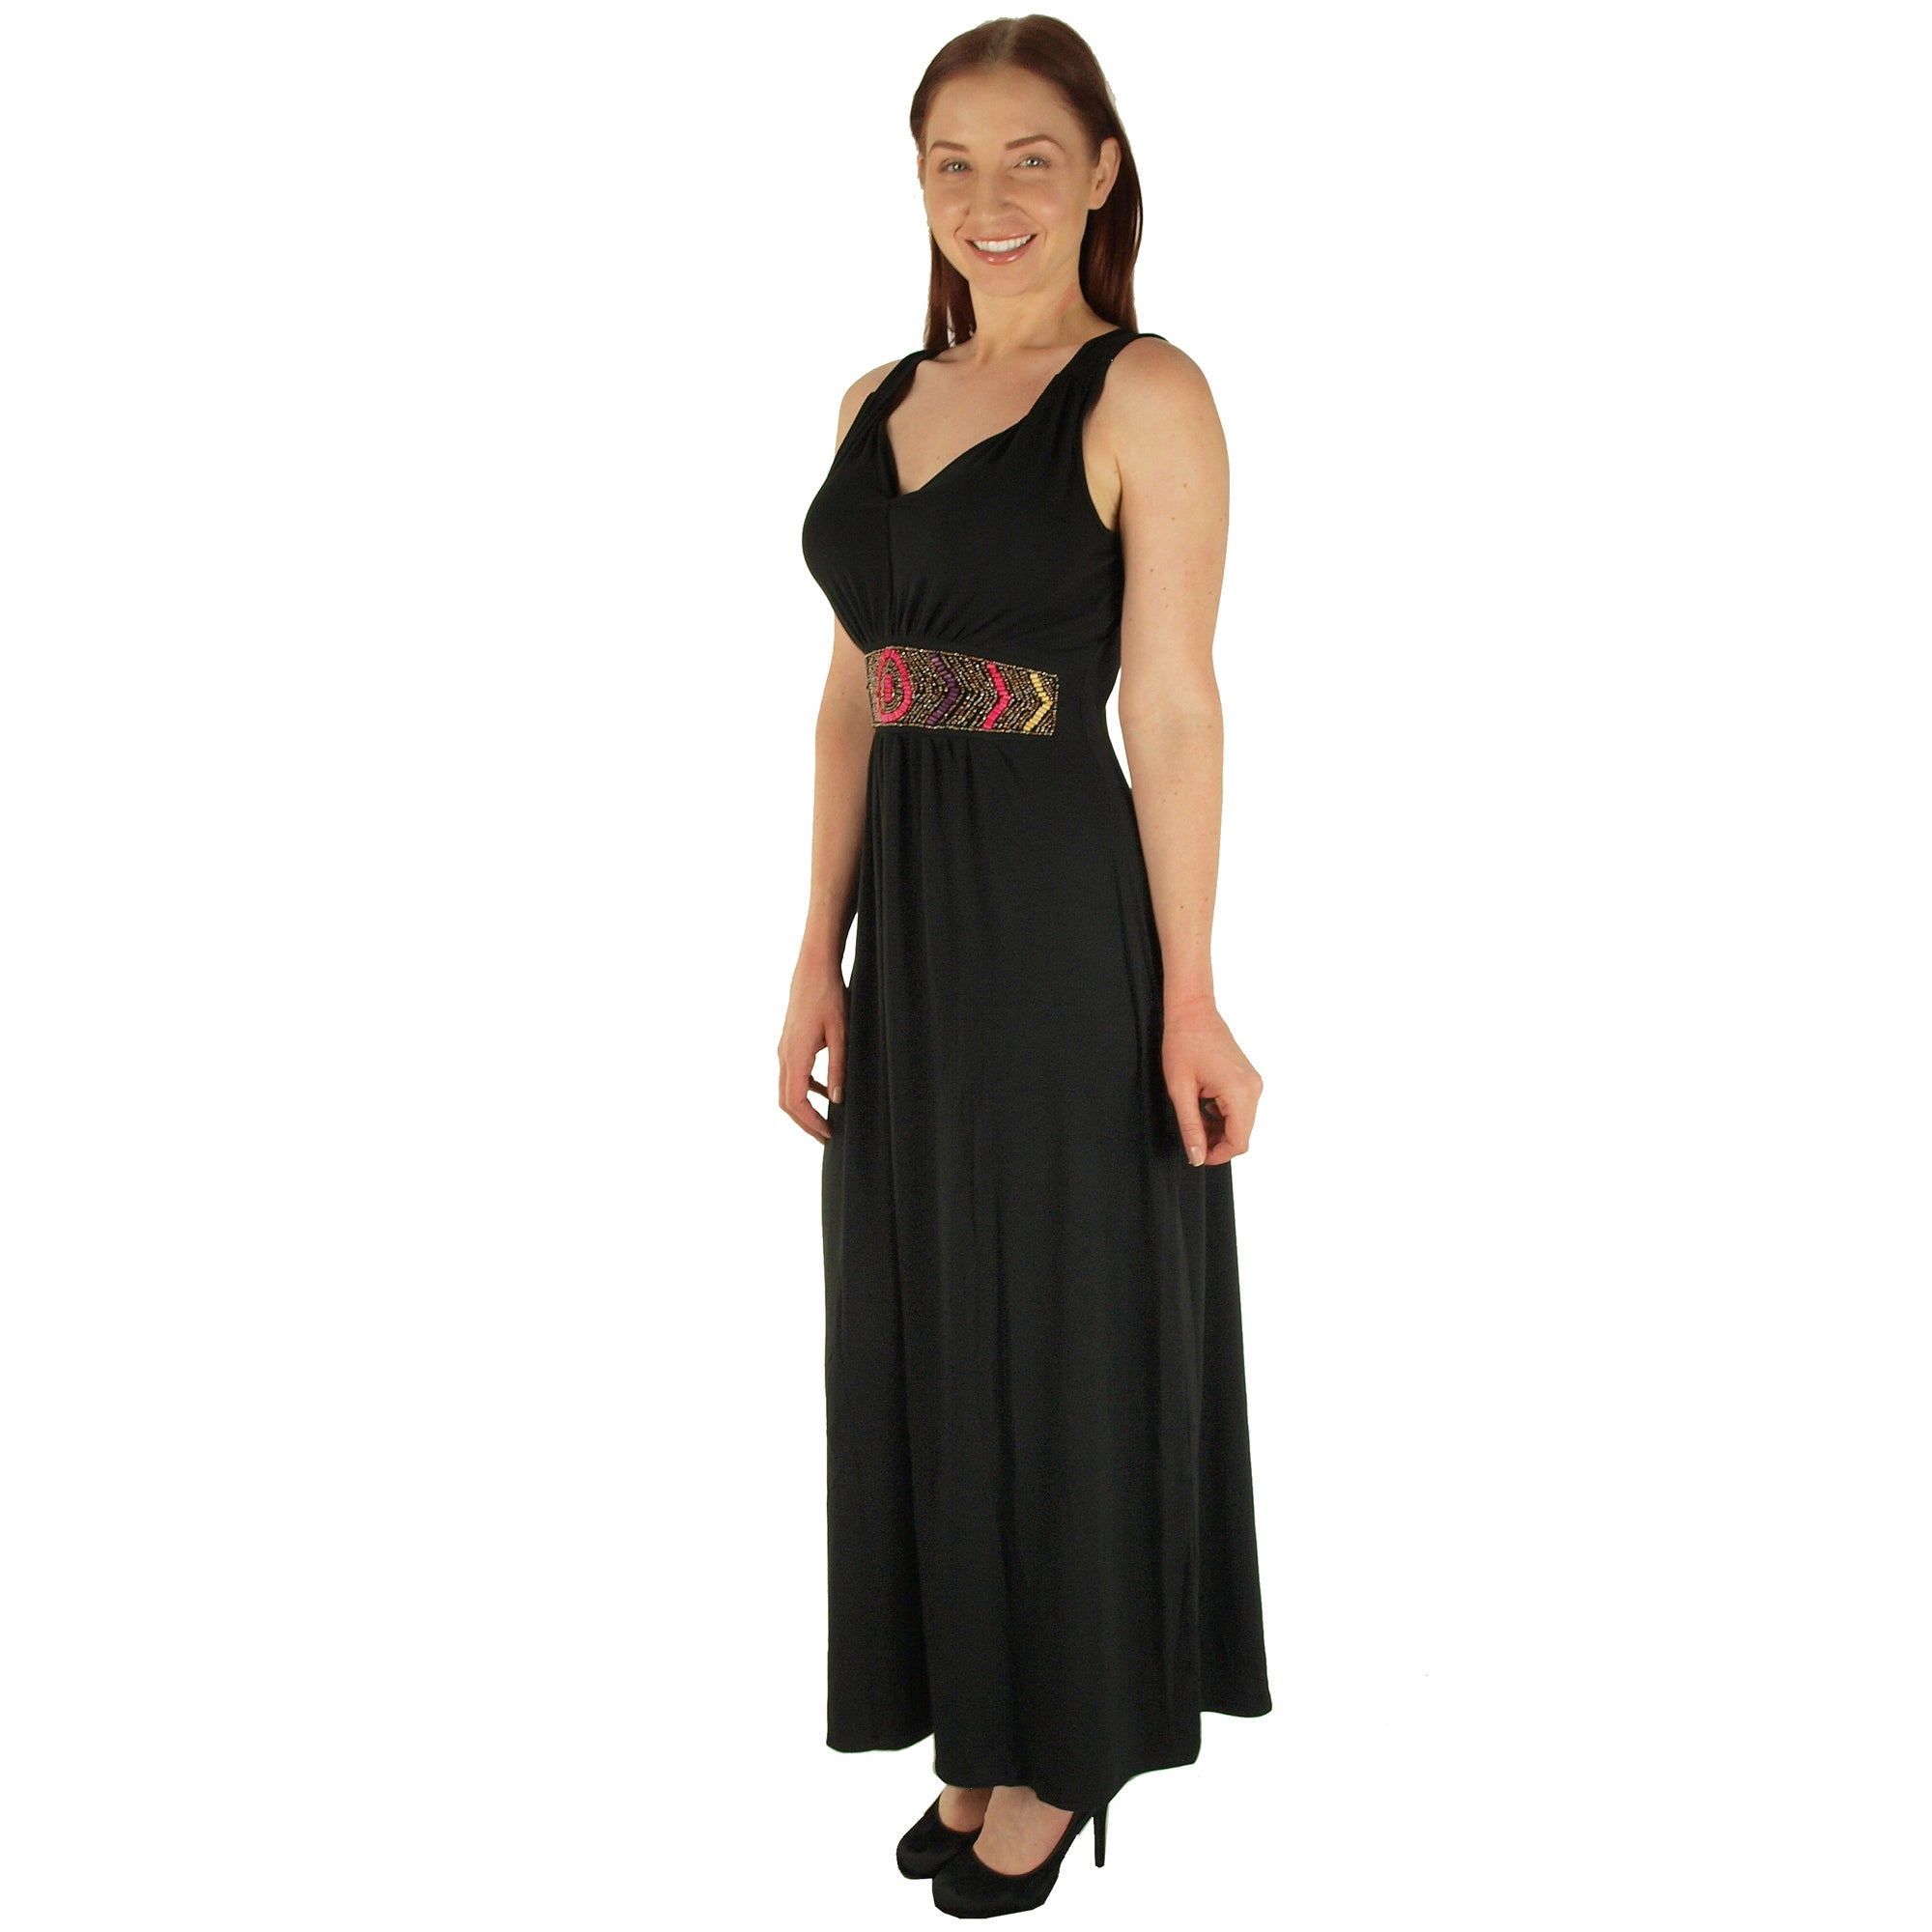 971ae710ee Shop Special One Women s Black Polyester Super Plus Size Beaded Waist Maxi  Dress - Free Shipping On Orders Over  45 - Overstock - 12061344